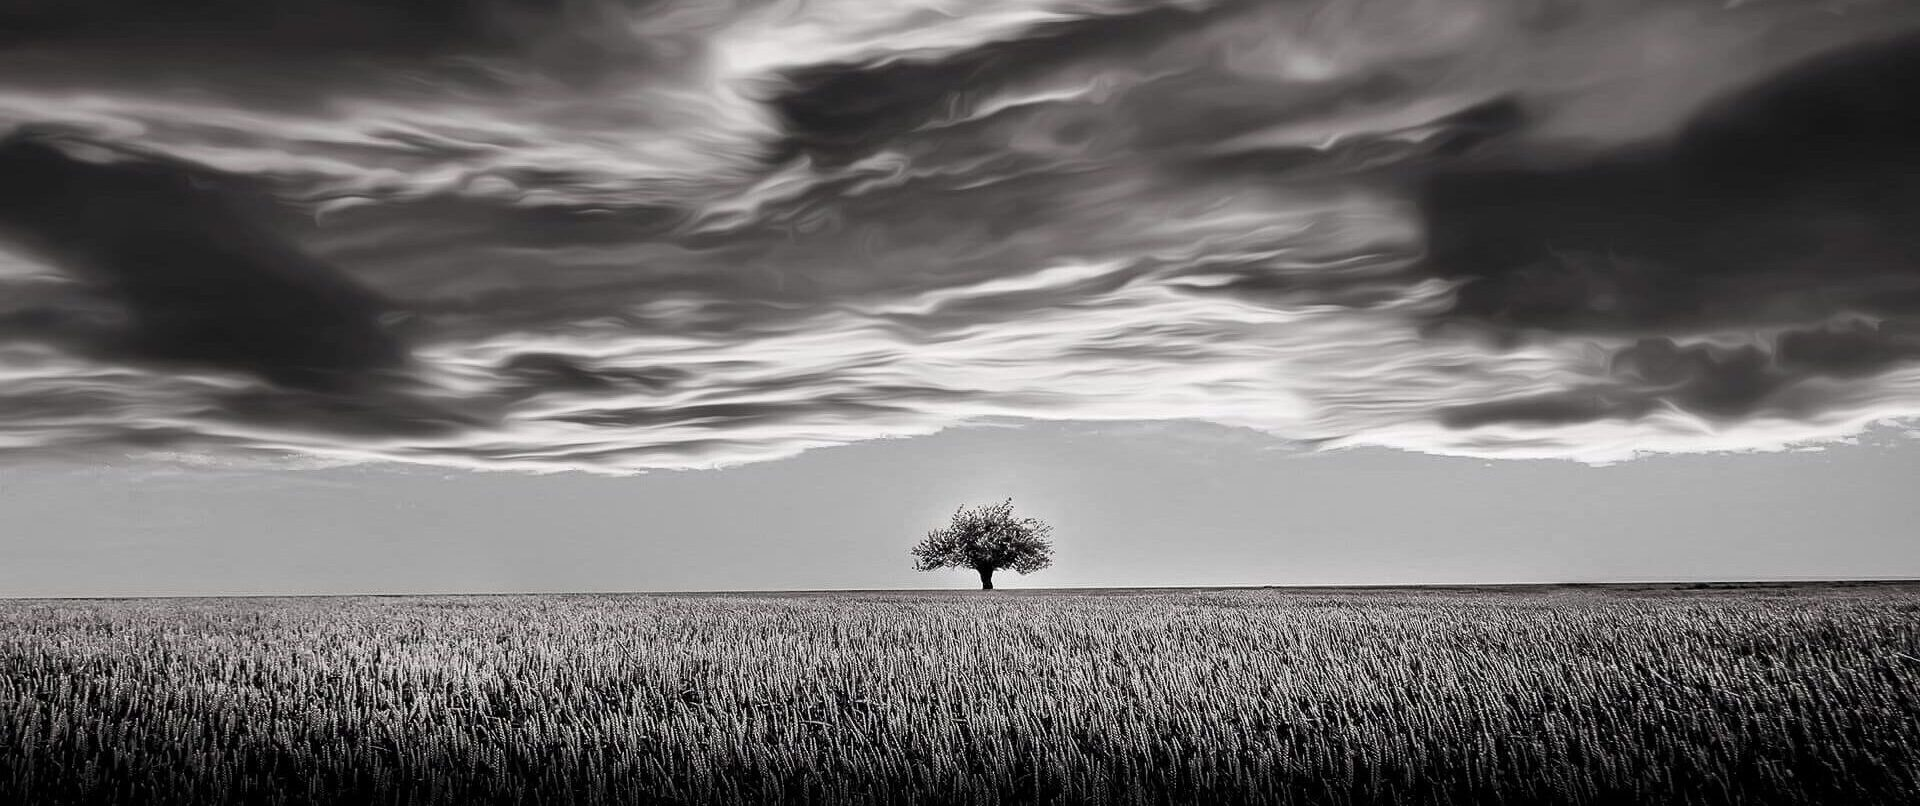 Tree at the End of the World